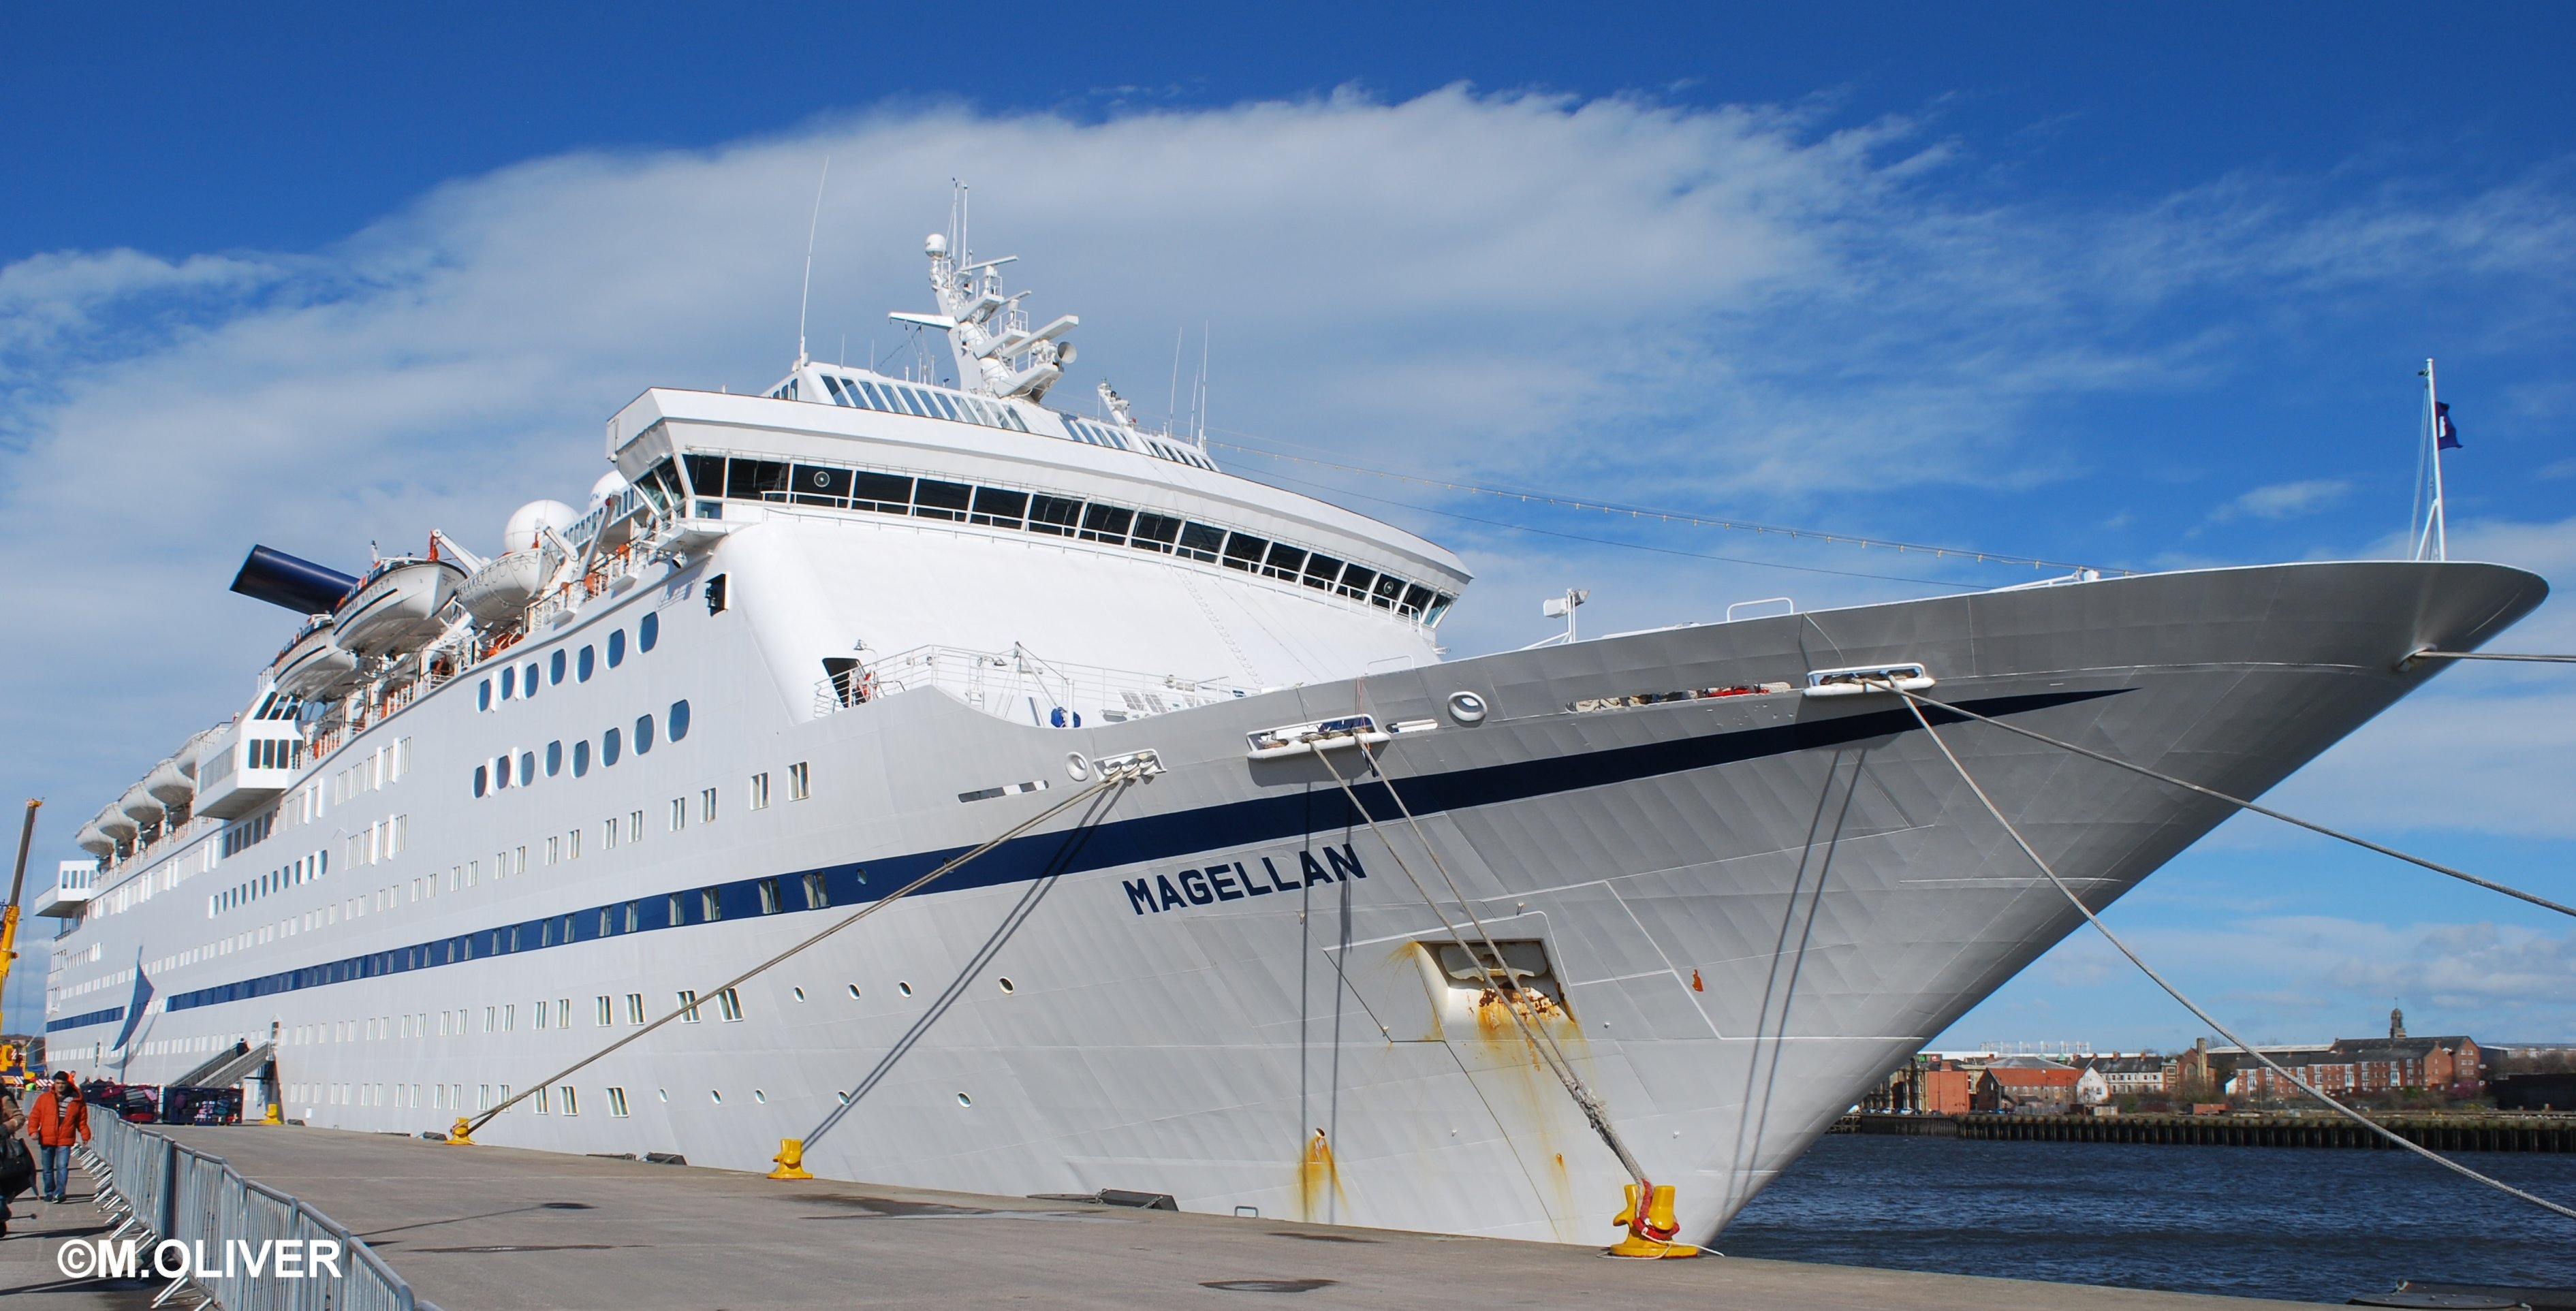 Cruise itinerary reviews -  Magellan Newcastle 03 15